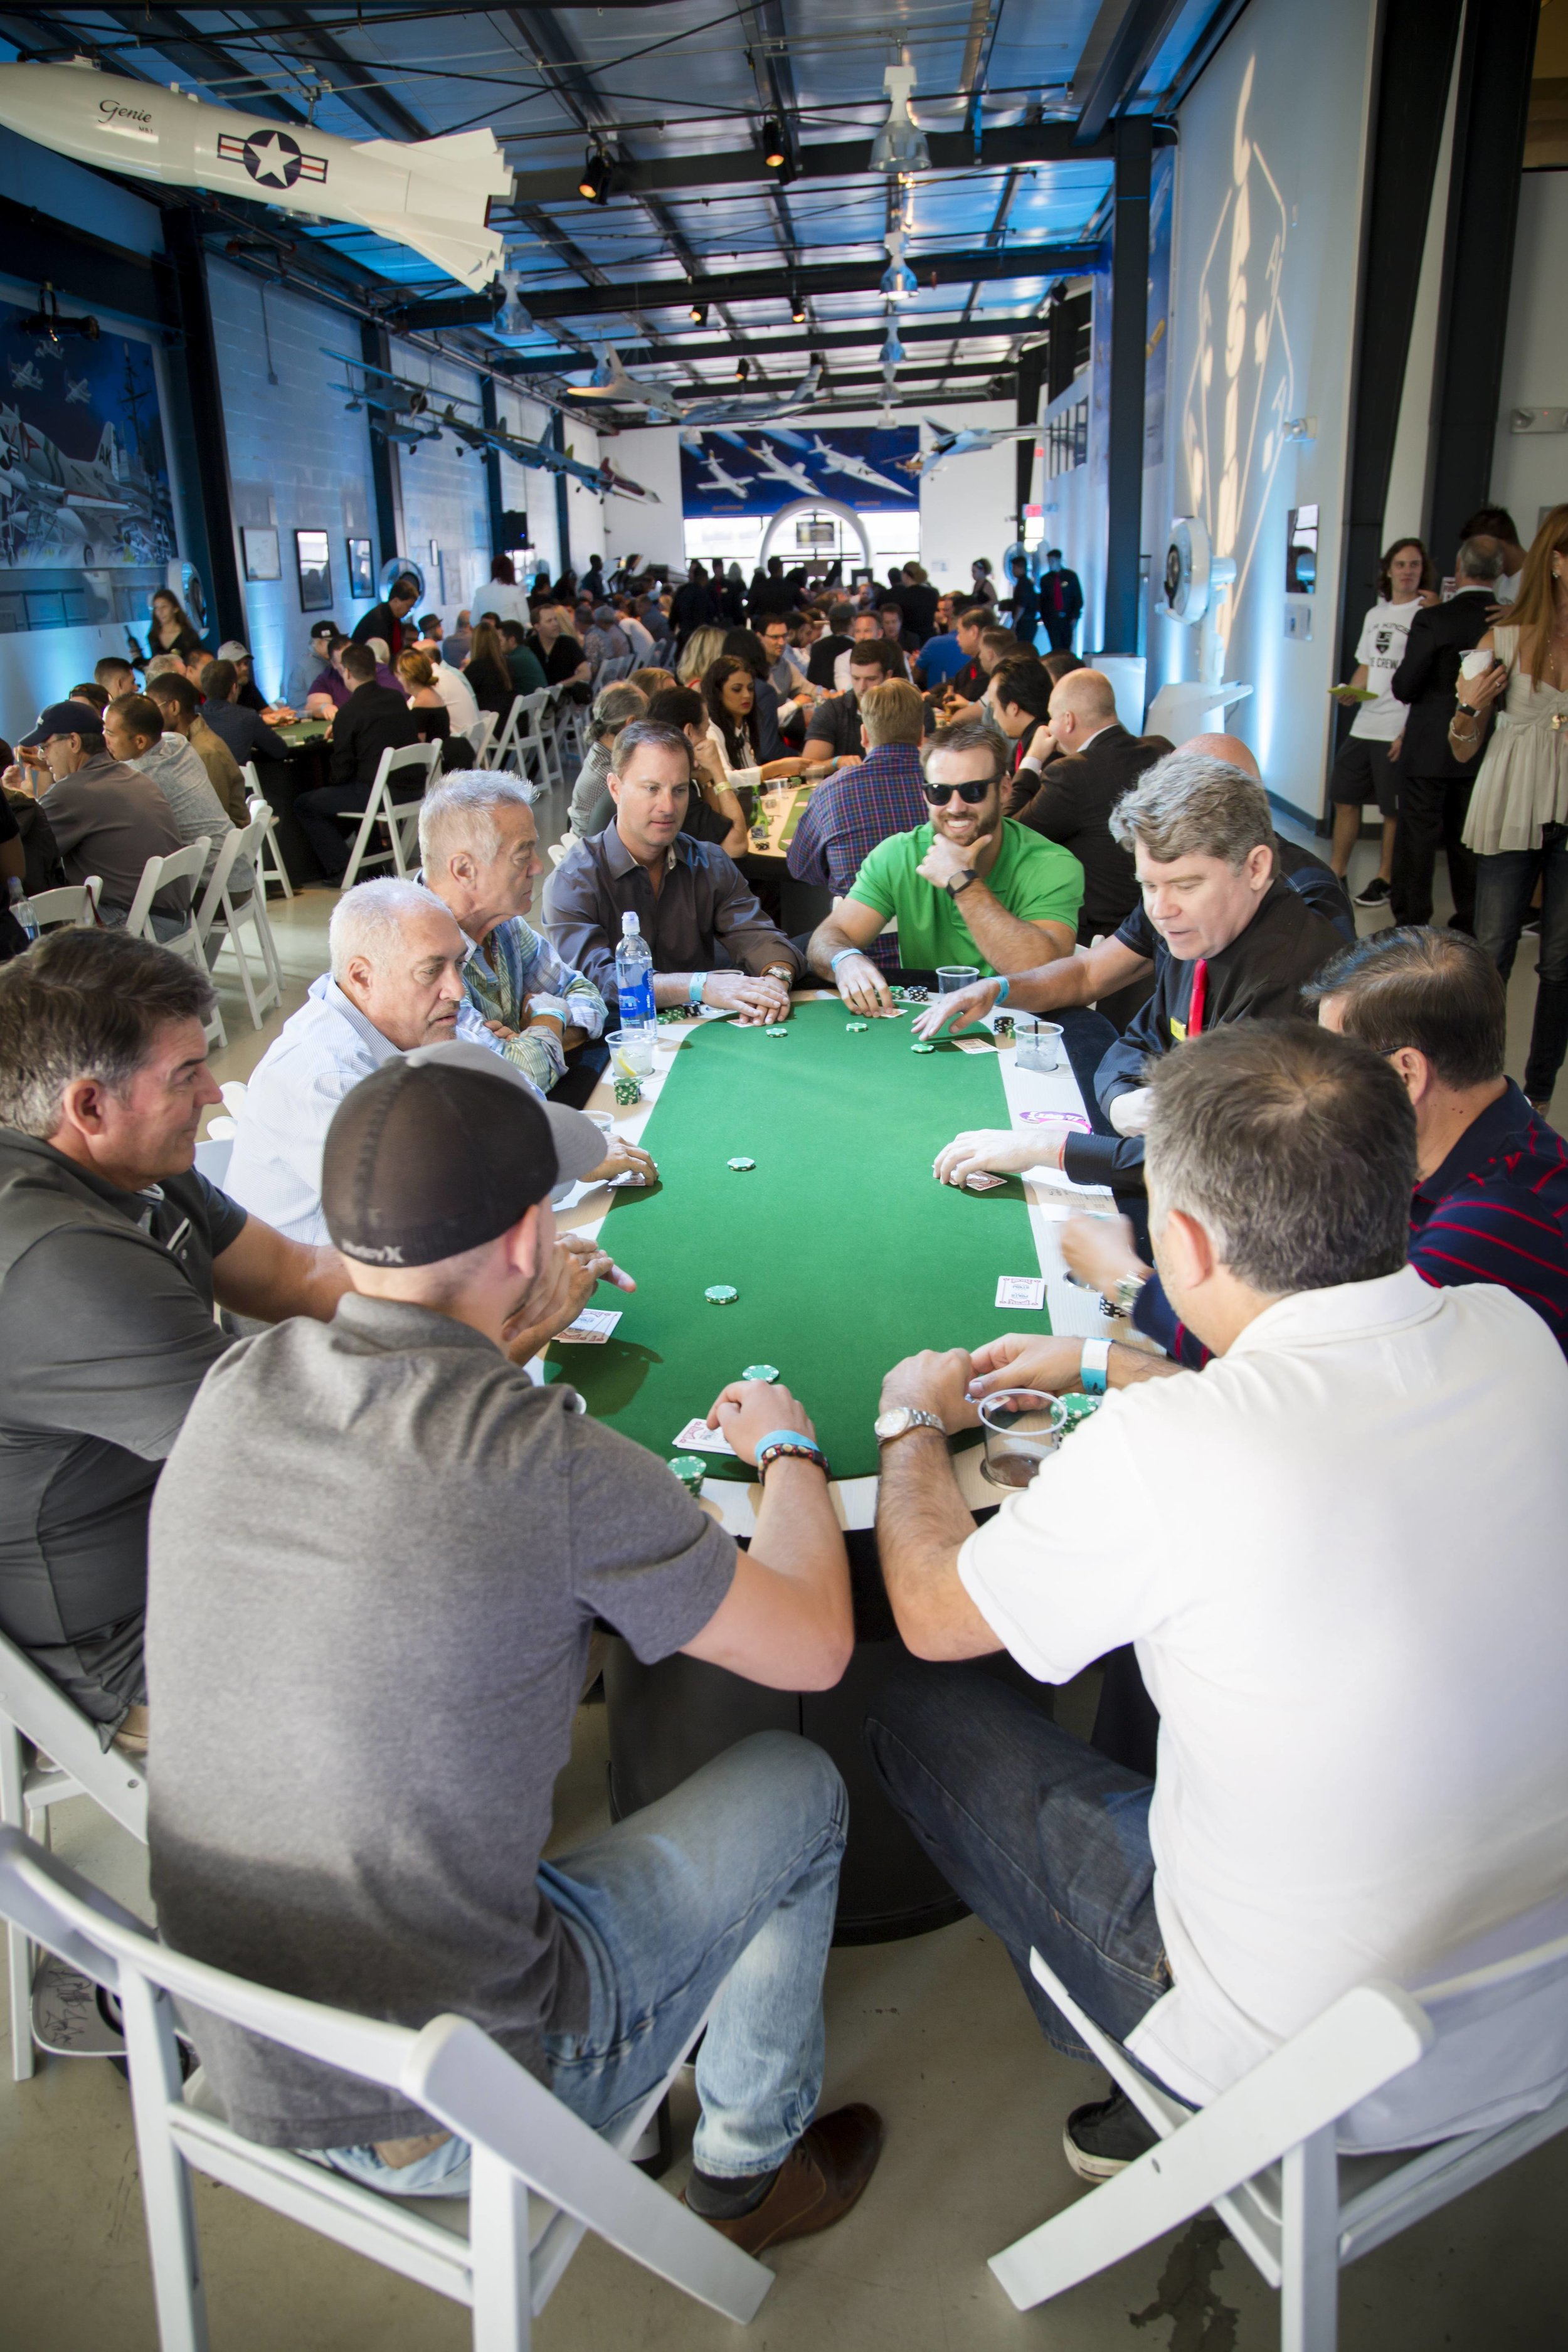 160820_EOH_Poker_0505 copy.jpg